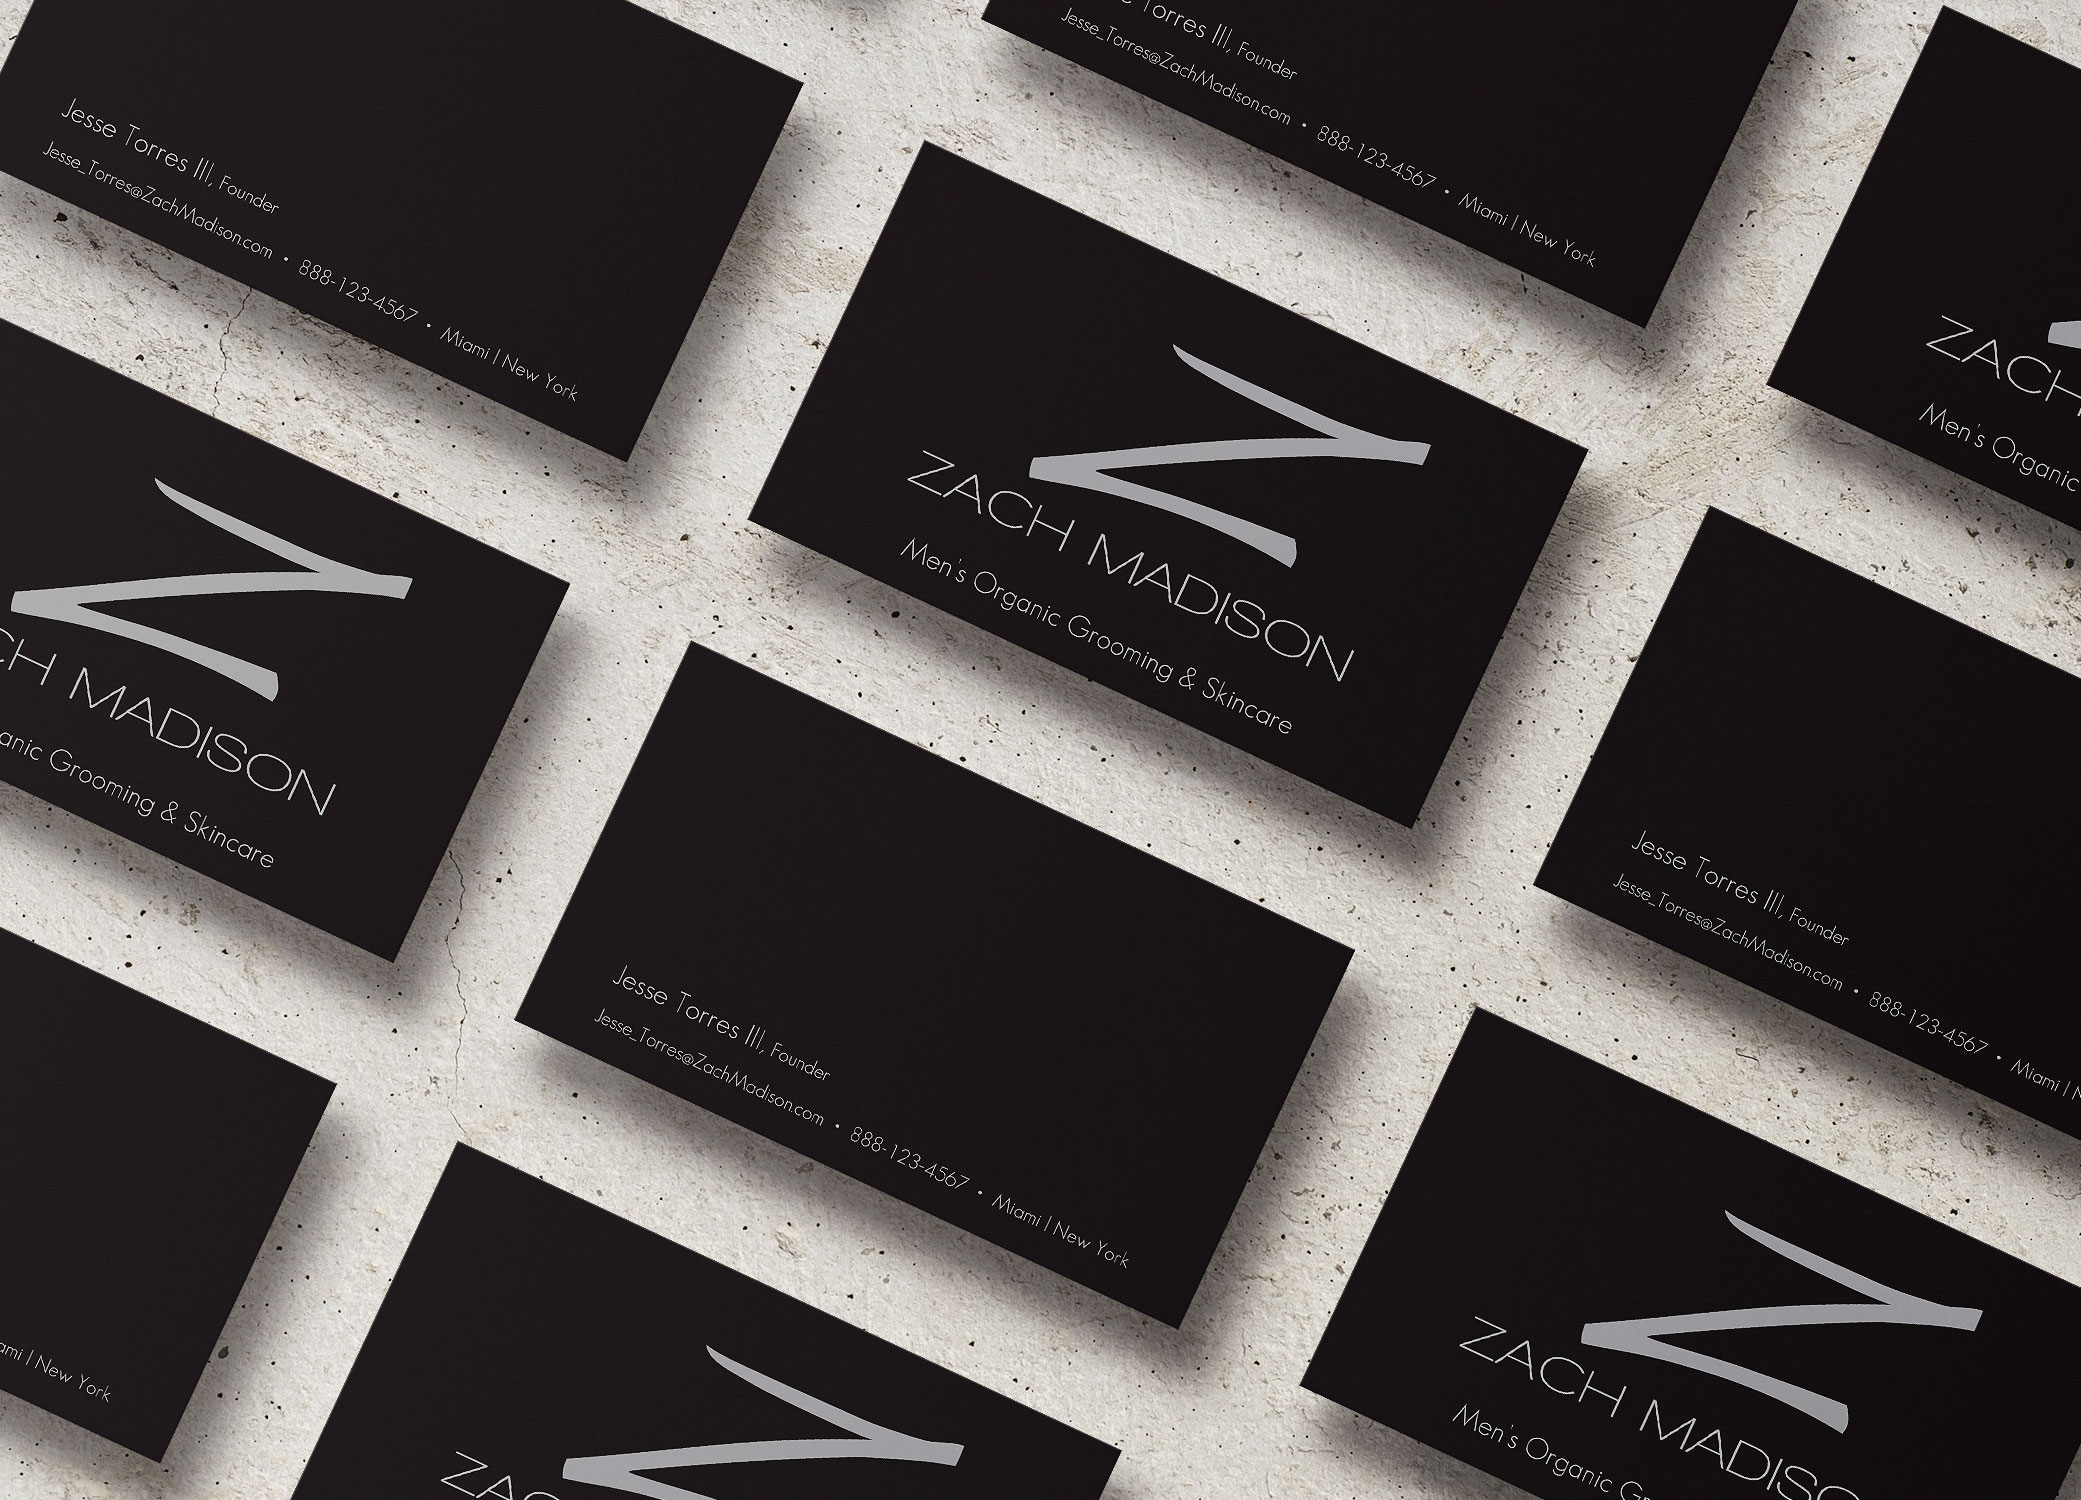 Zach Madison black business cards with metallic 'Z' arranged in slanted rows showing front and back on granite backdrop.